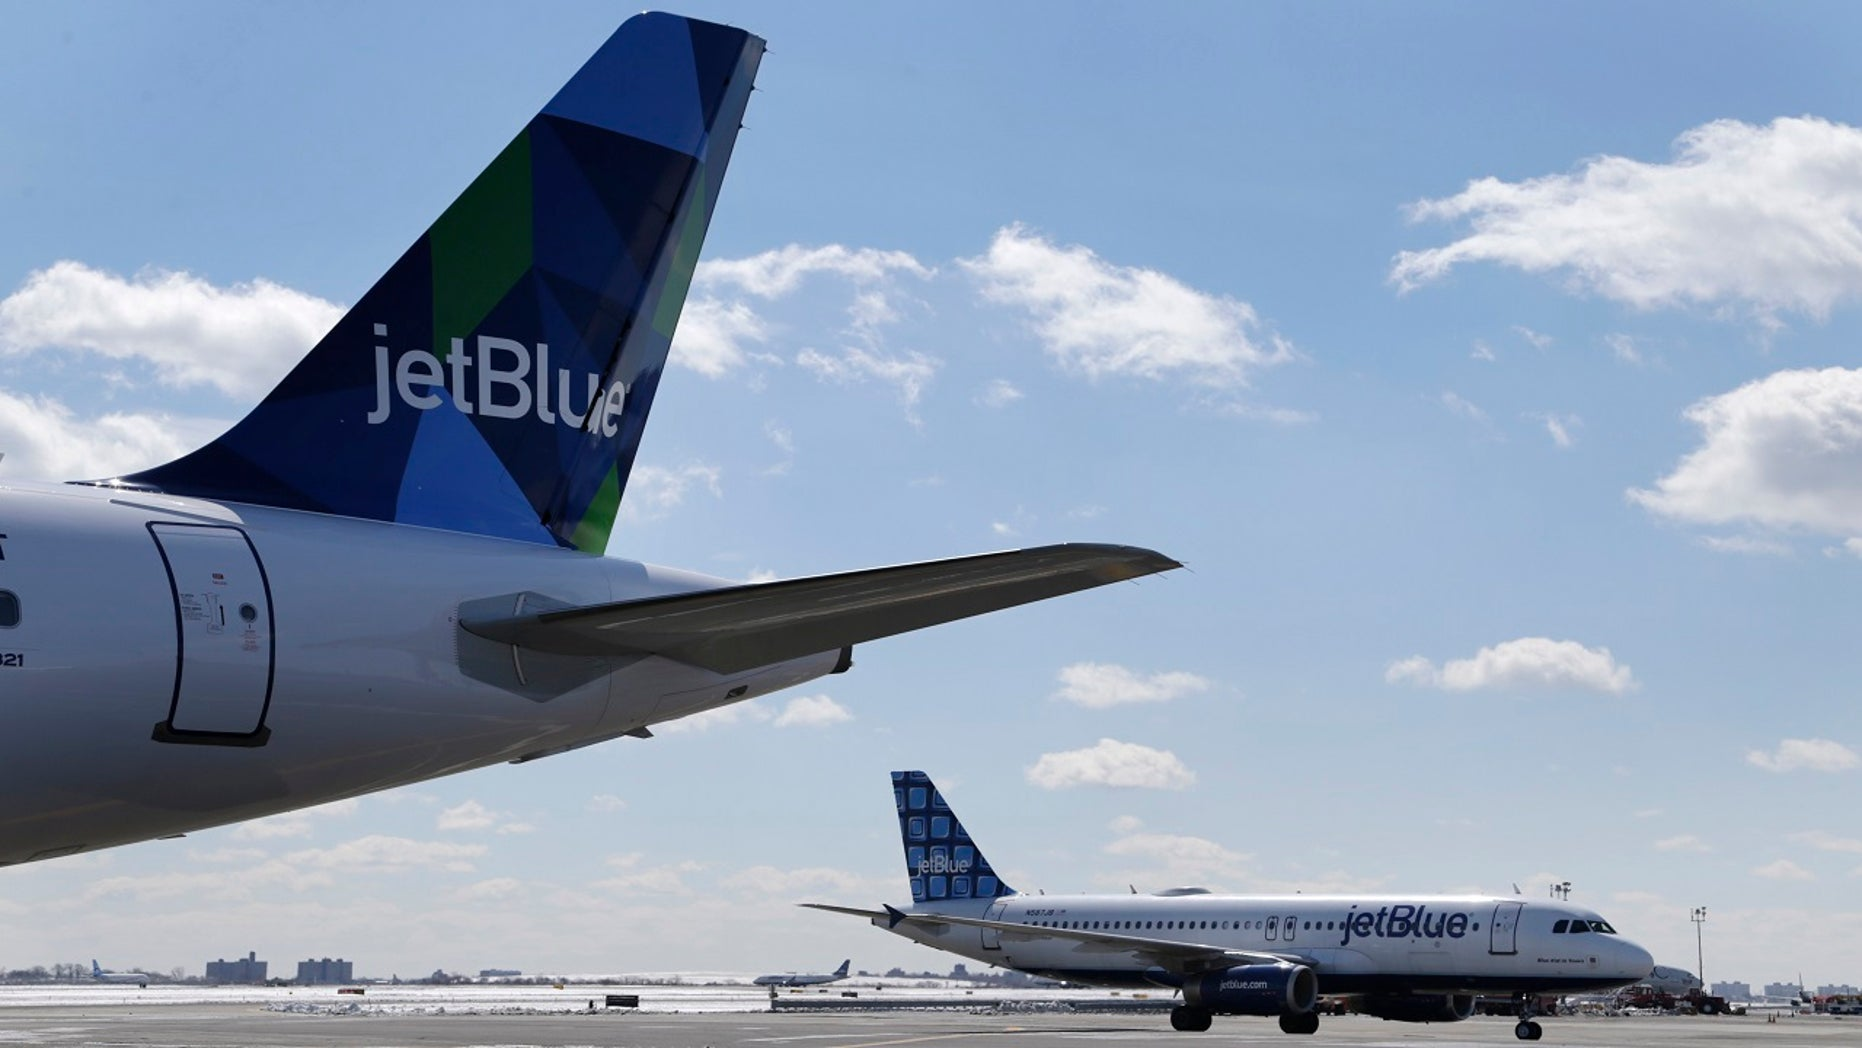 Jet Blue airplanes on the tarmac at John F. Kennedy International Airport in New York. (Associated Press)